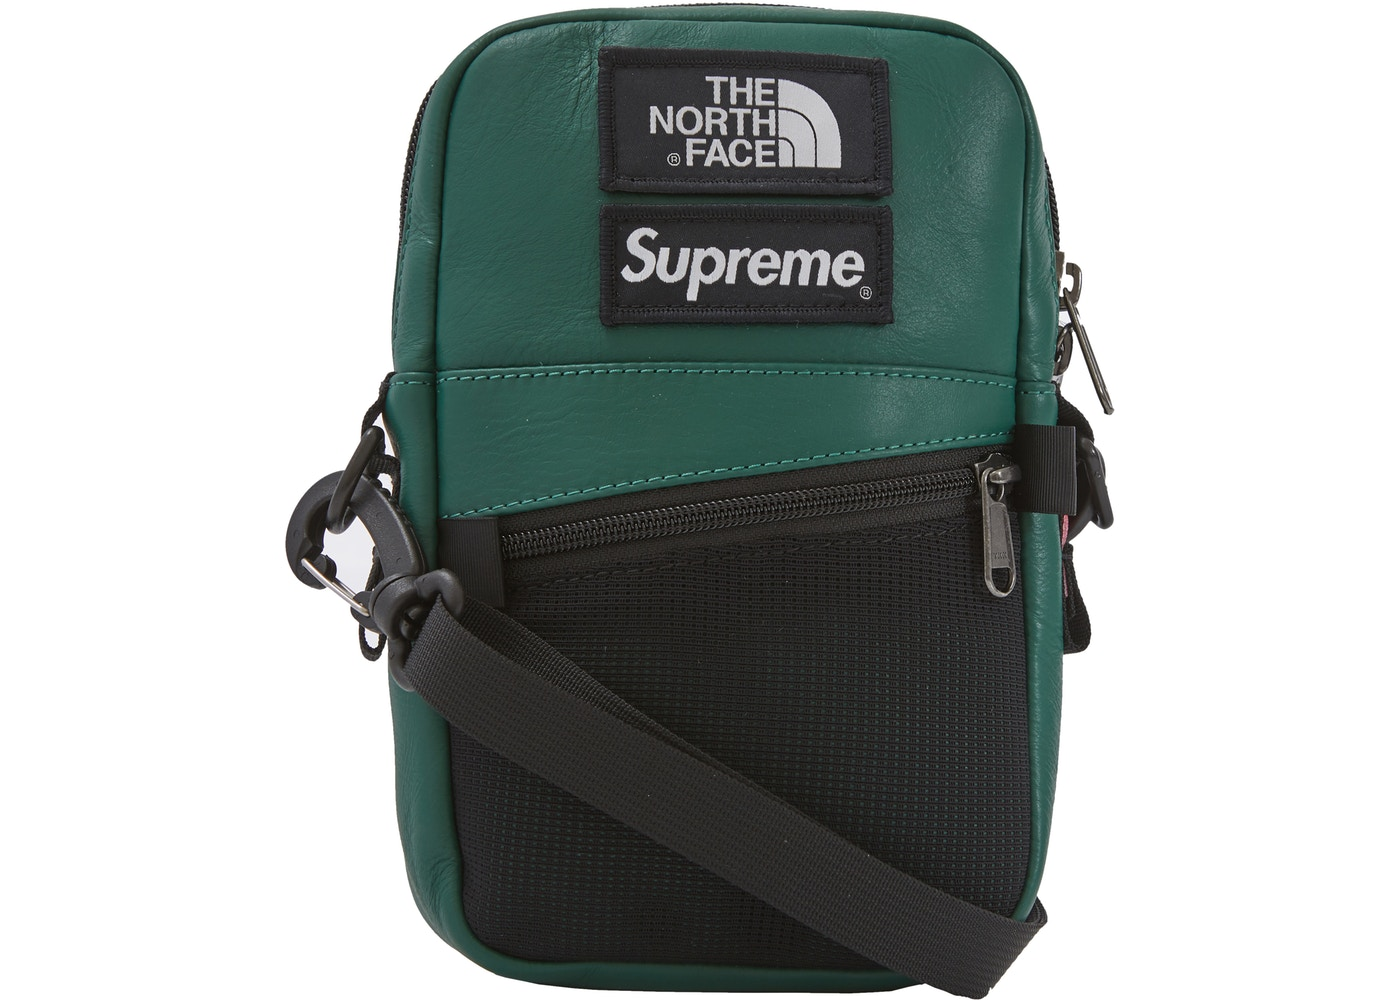 811427e14 Supreme The North Face Leather Shoulder Bag Dark Green